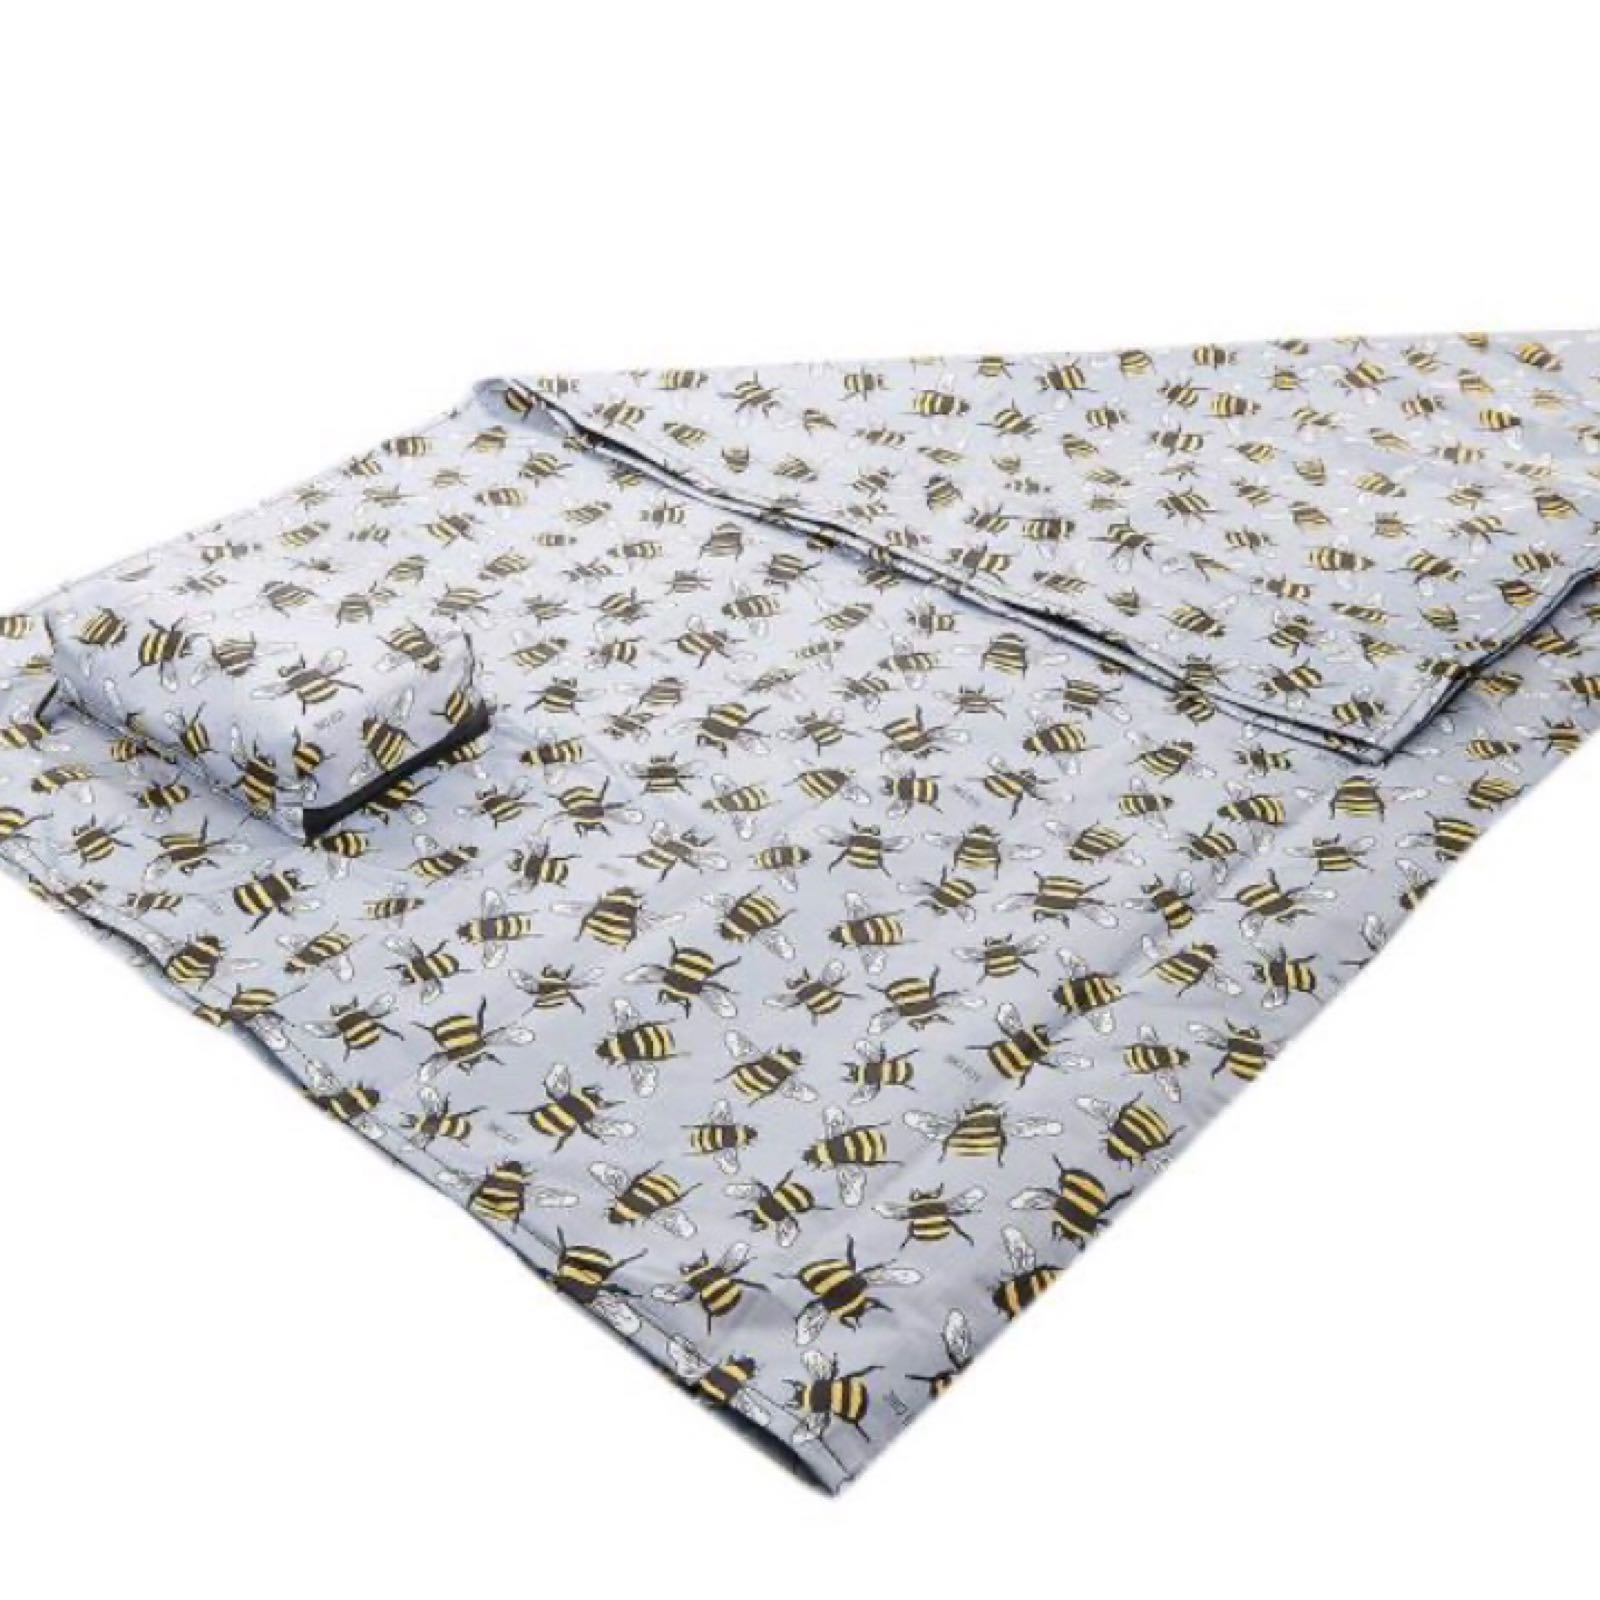 'Bees' Foldable Picnic Blanket